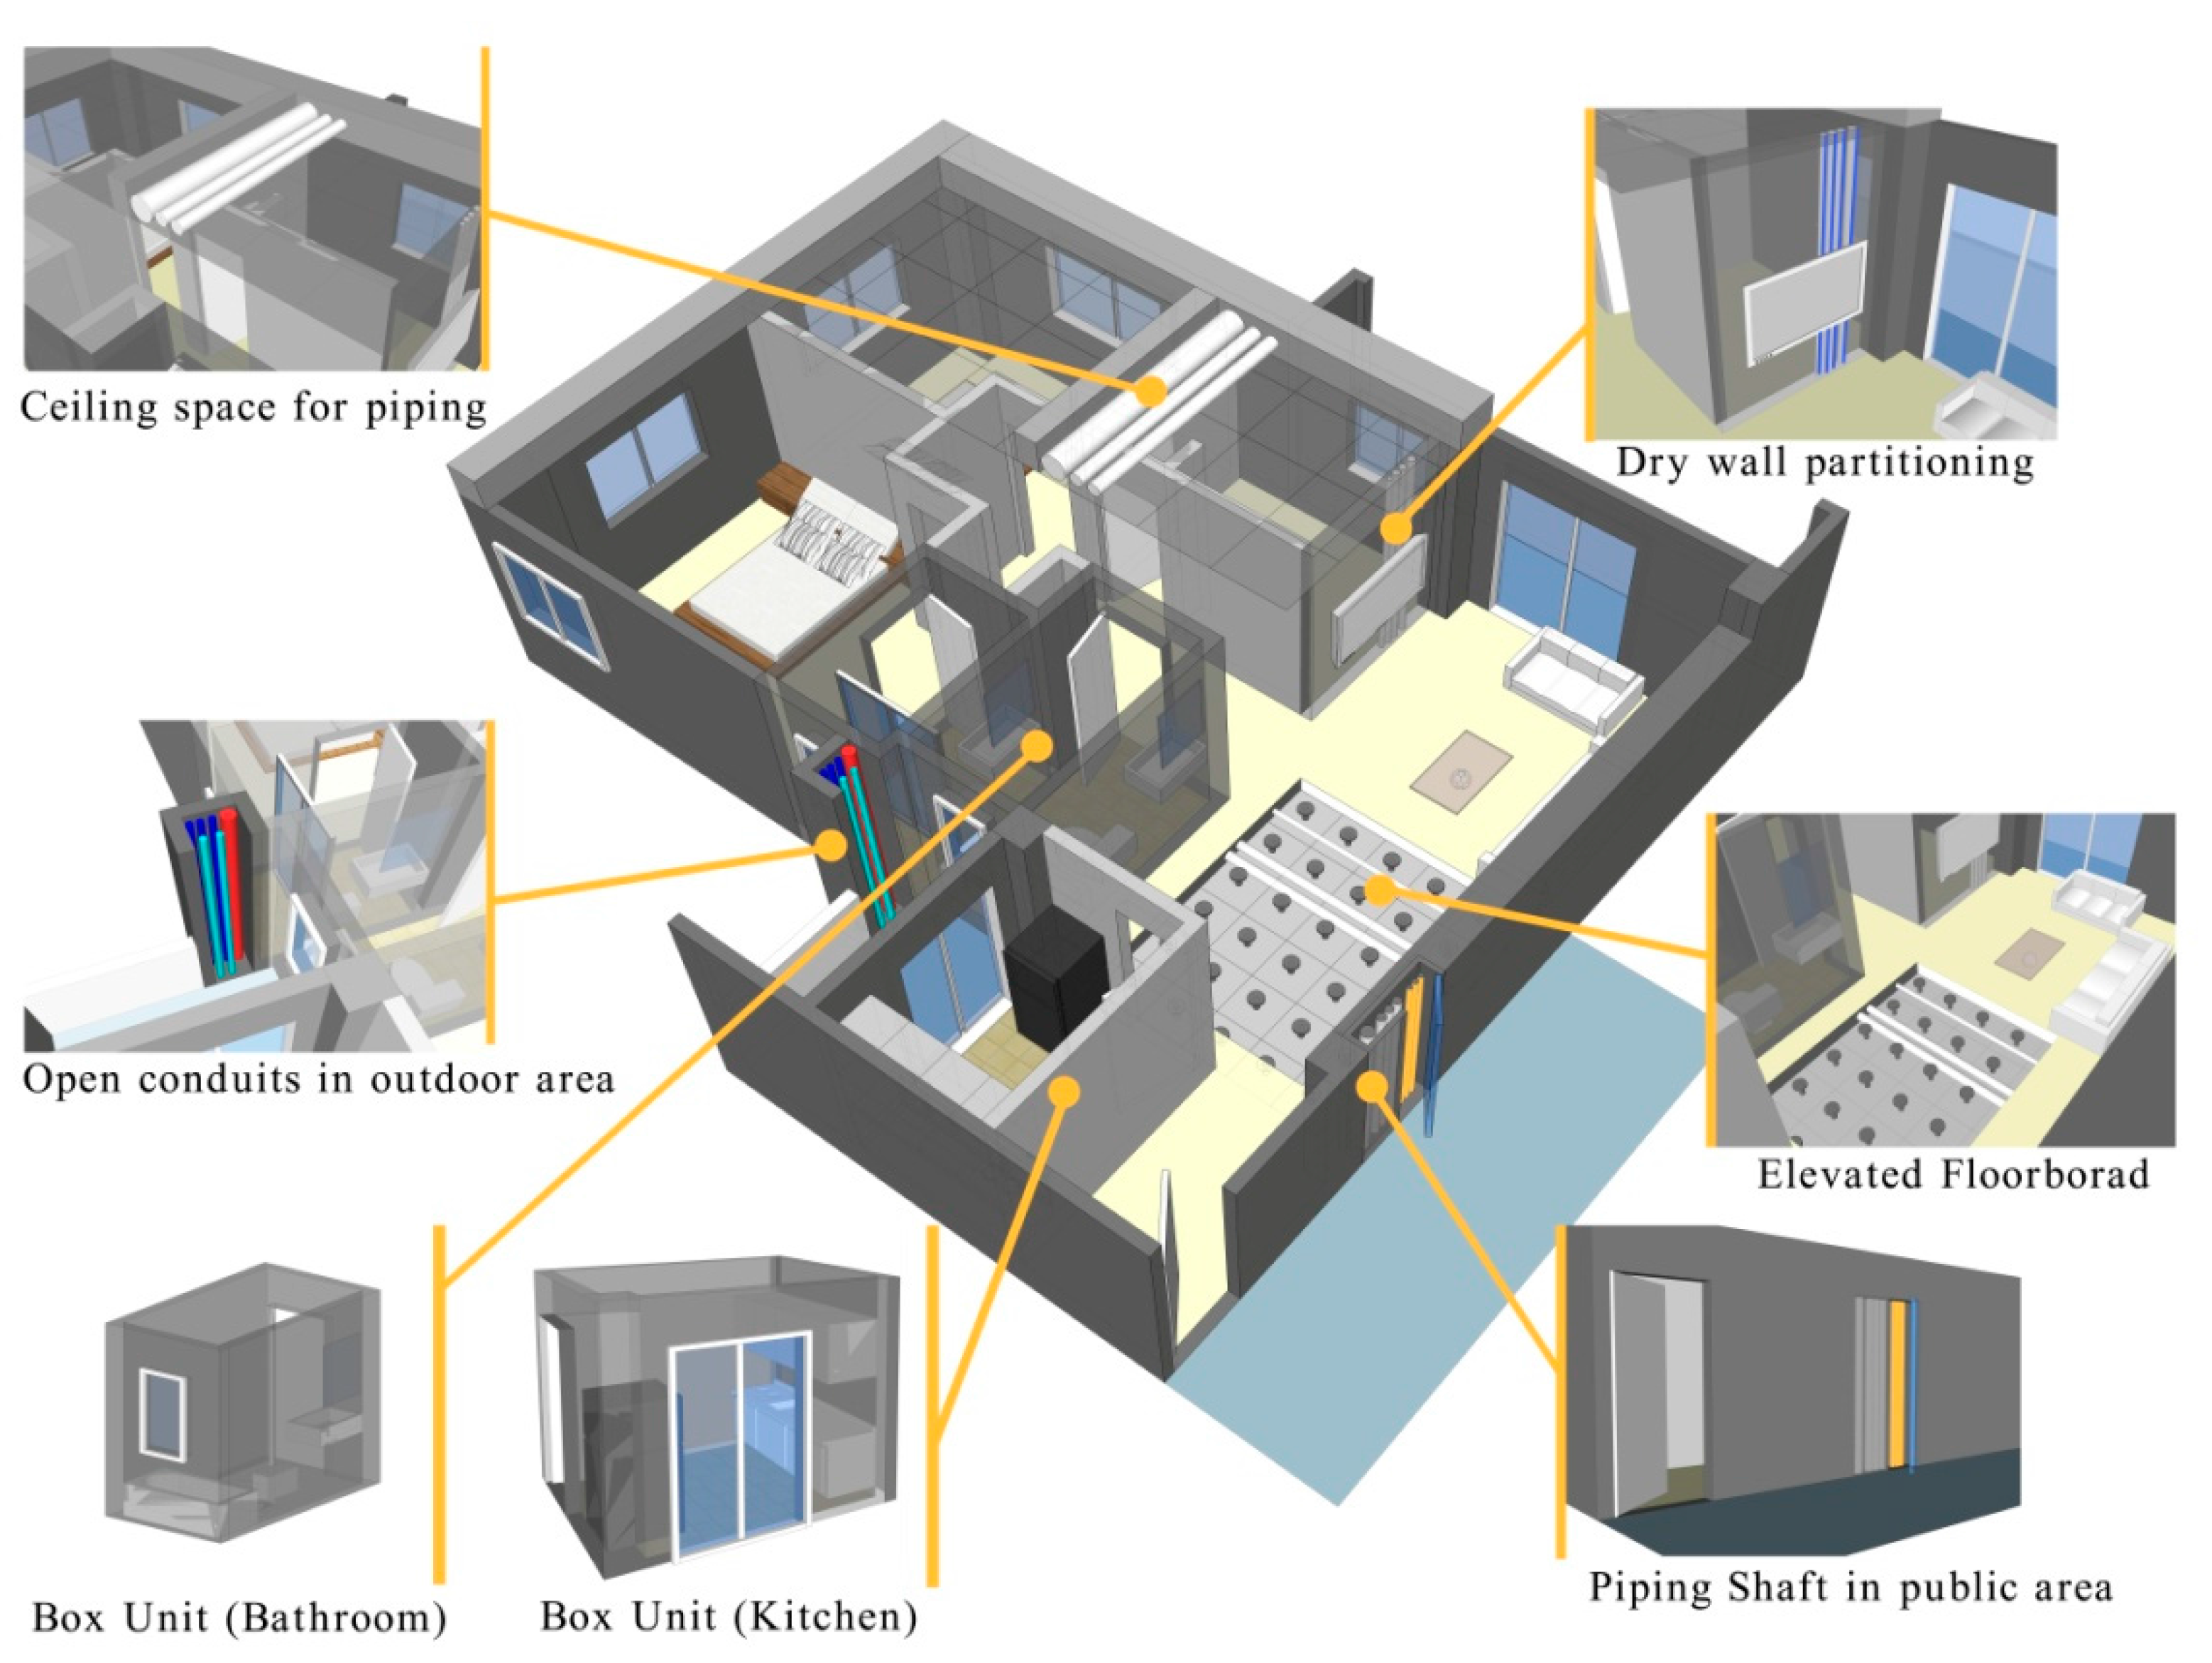 Applied Sciences Free Full Text Bim Based Approach To Simulate Building Adaptive Performance And Life Cycle Costs For An Open Building Design Html